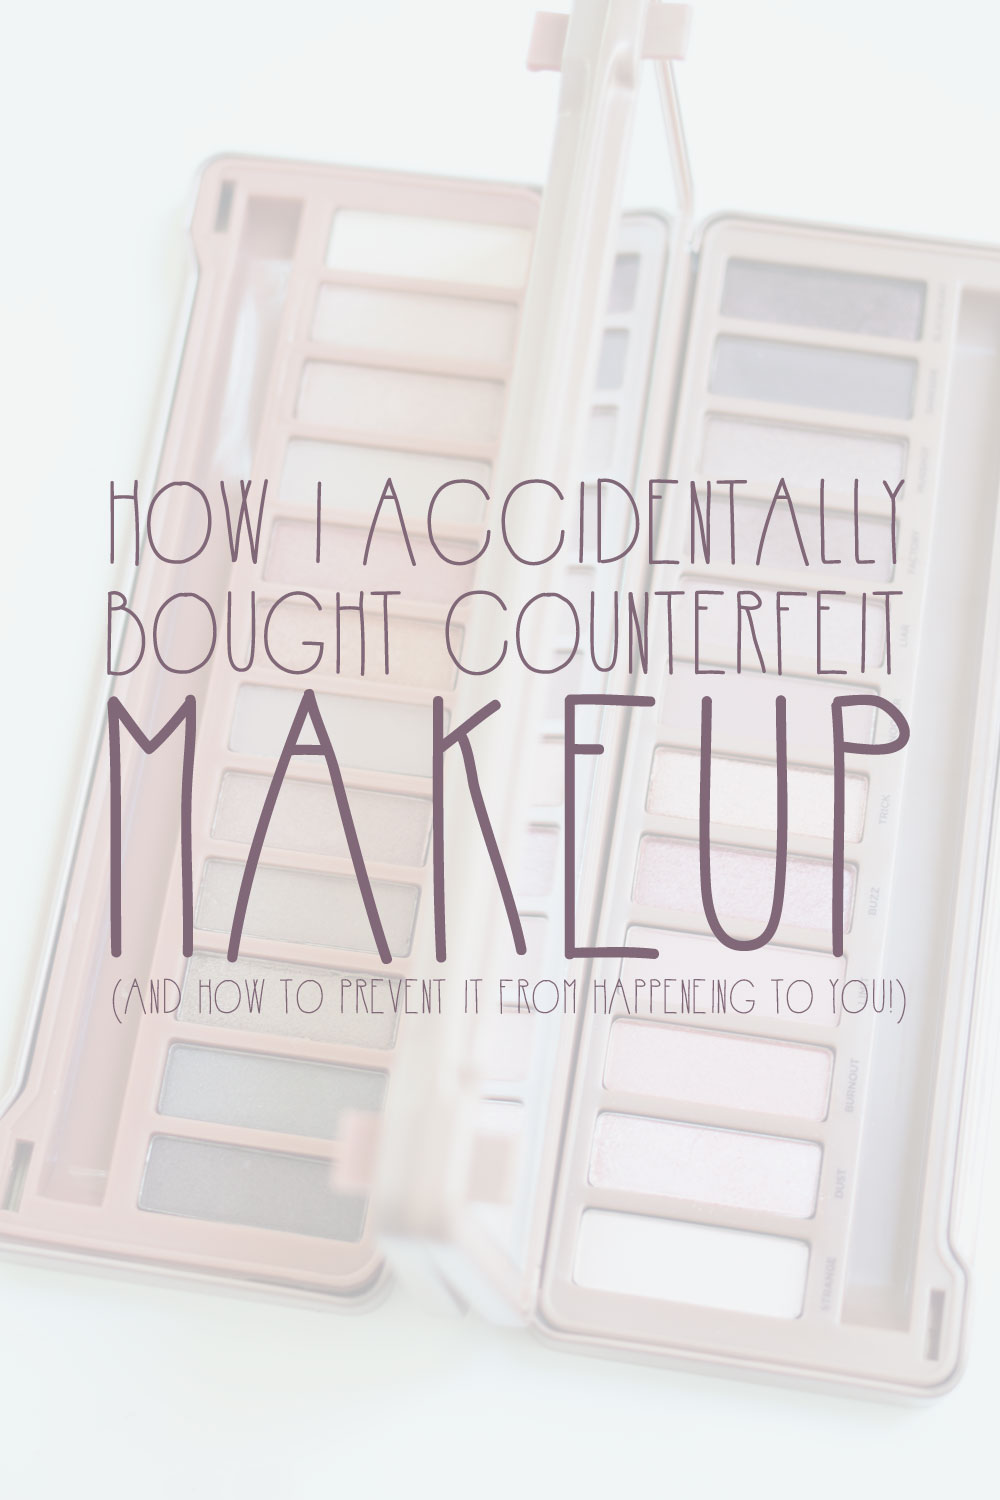 How I Accidentally Bought a Counterfeit Urban Decay Naked3 Makeup Palette // hellorigby seattle beauty blog